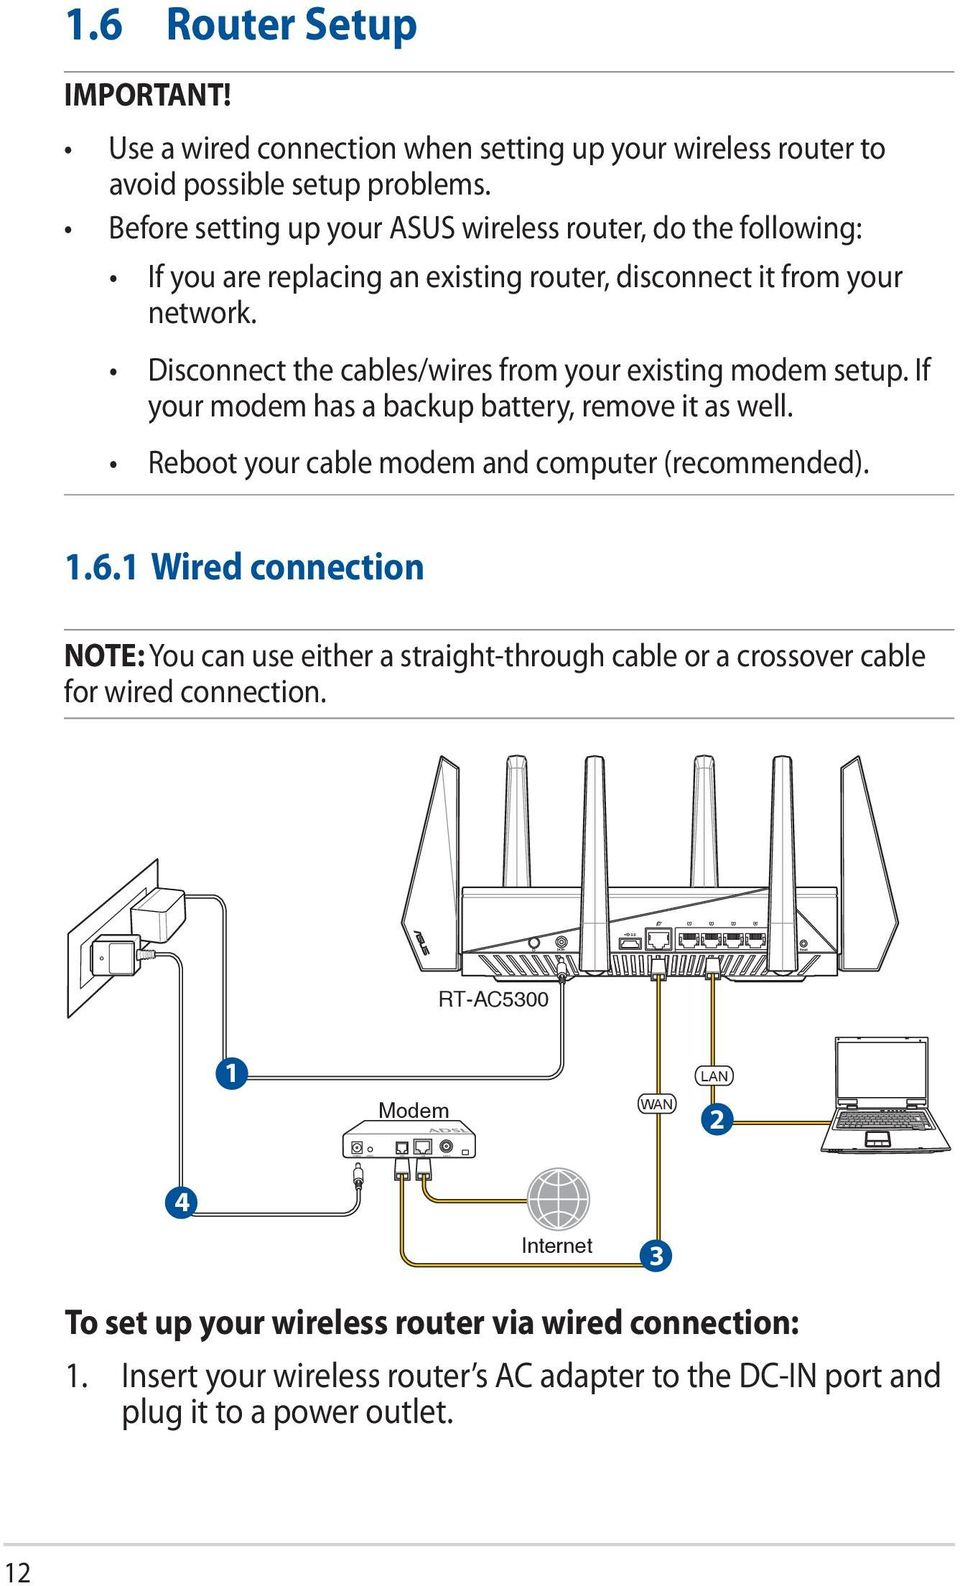 User Guide Rt Ac5300 Wireless Tri Band Gigabit Router Pdf Hook Up Diagram Disconnect The Cables Wires From Your Existing Modem Setup If Has A